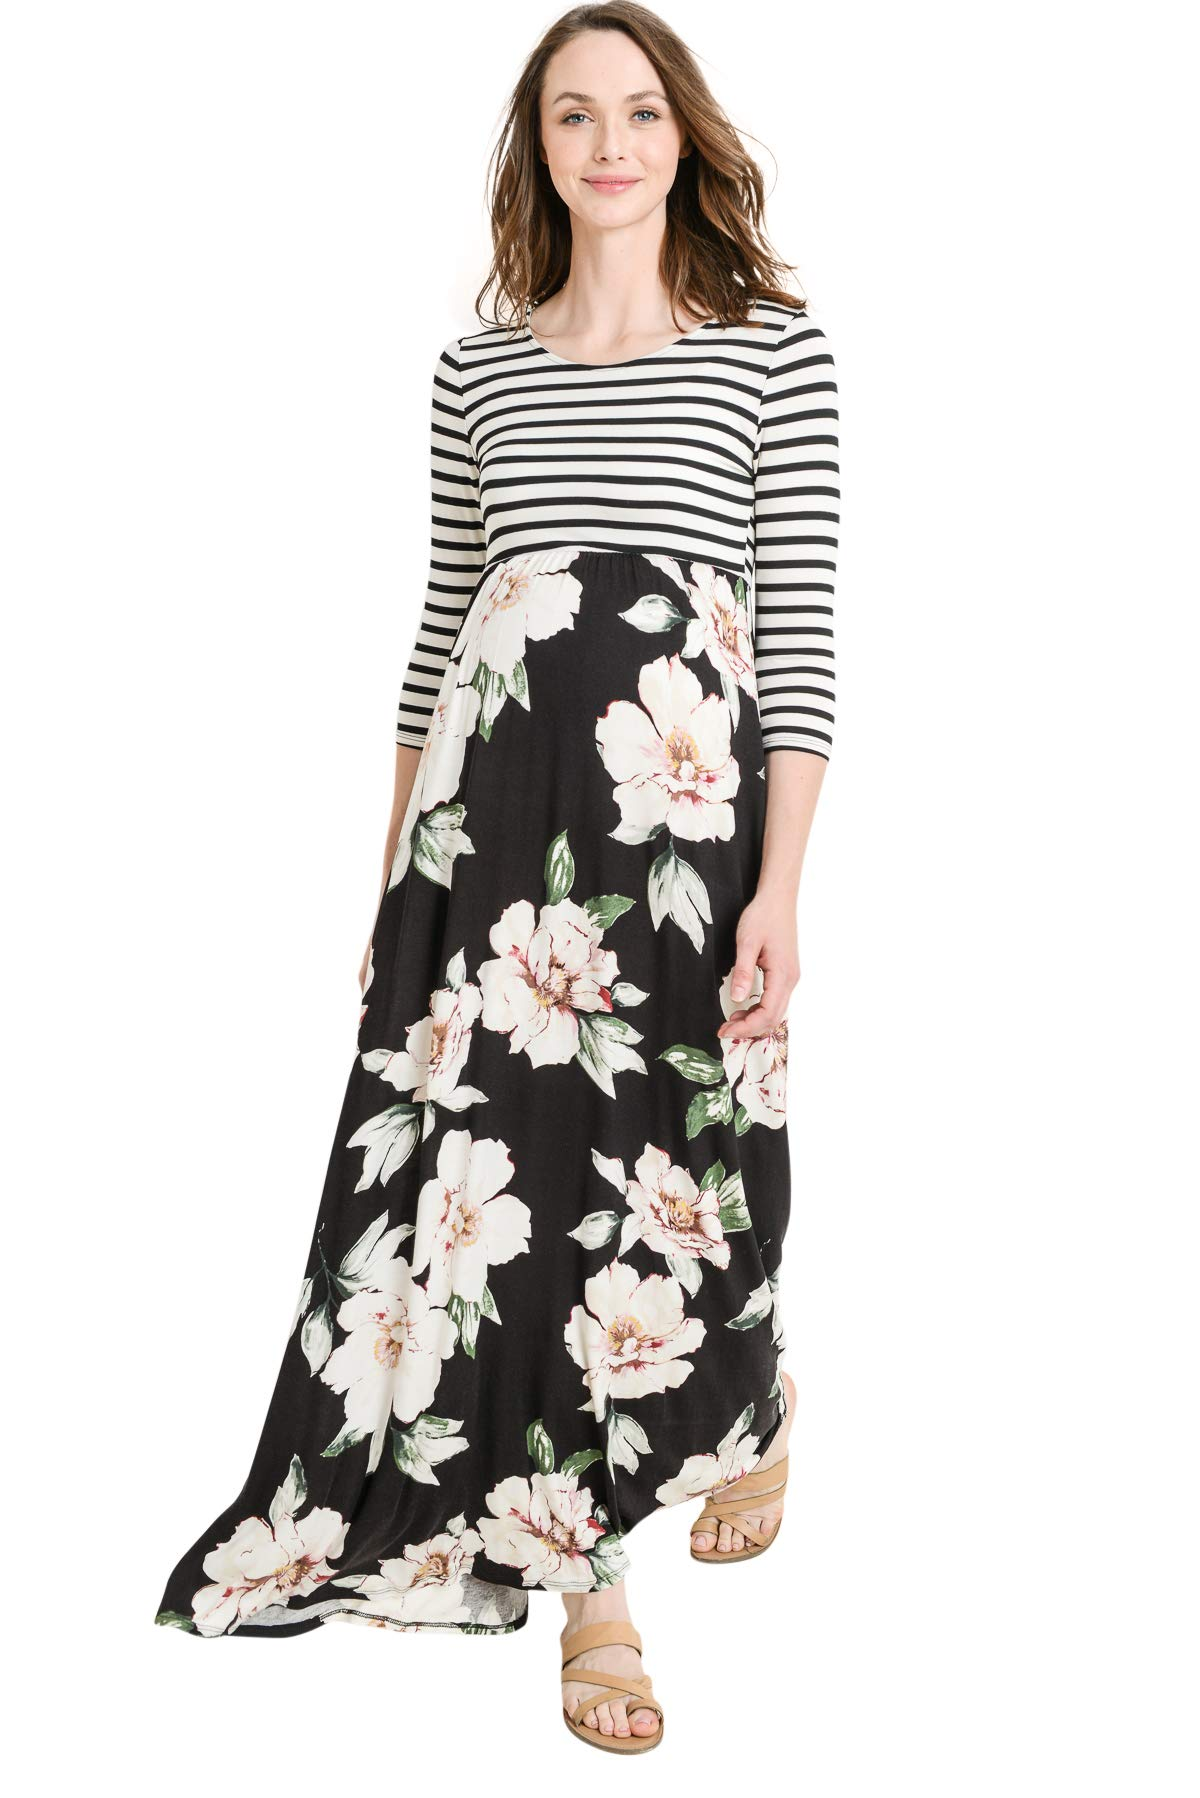 Hello MIZ Women's Floral Color Block Stripe Maxi Maternity Dress - Made in USA (Black/Ivory Flower, L)